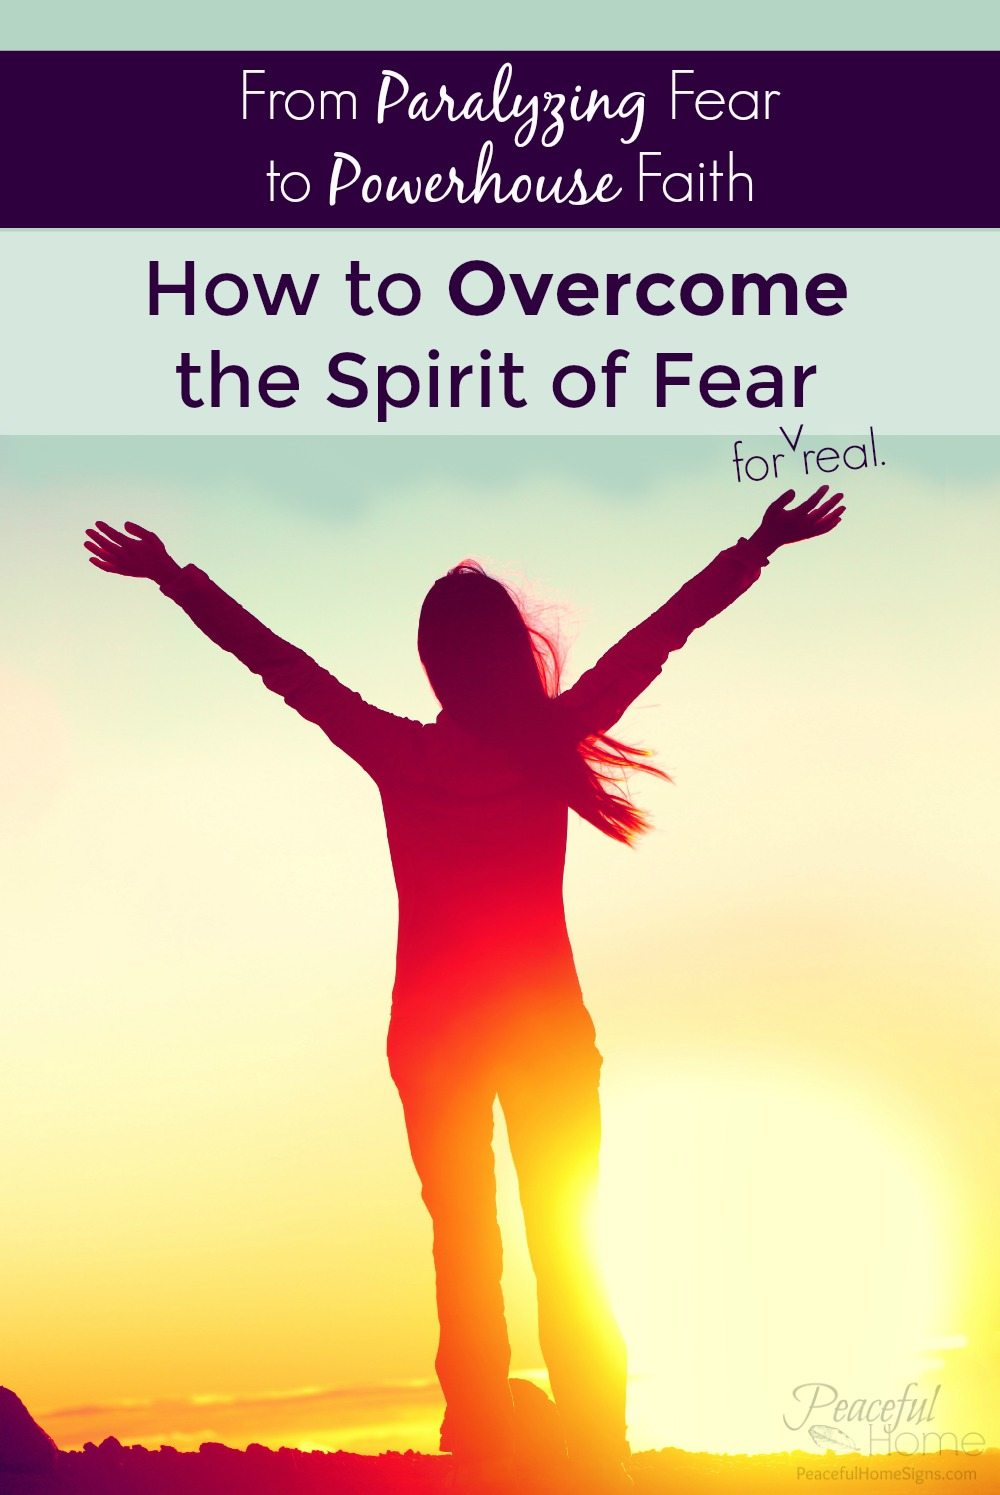 how to overcome the spirit of fear, overcoming fear, the Biblical way to overcome fear, stop being afraid, freedom from fear, rebuke the spirit of fear